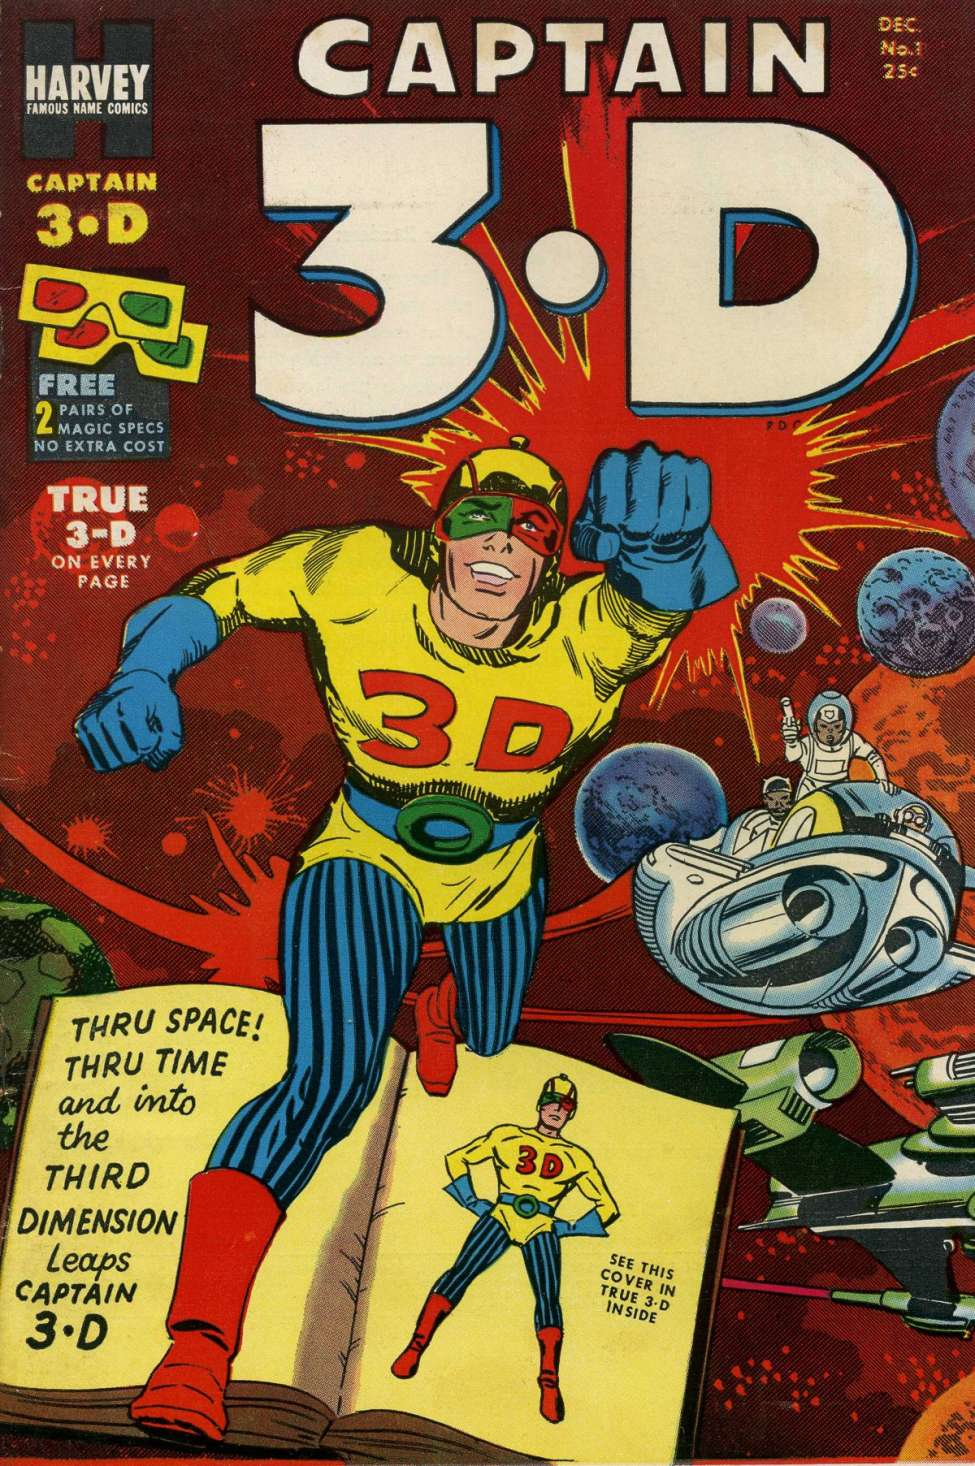 Comic Book Cover For Captain 3-D #1 - Version 2